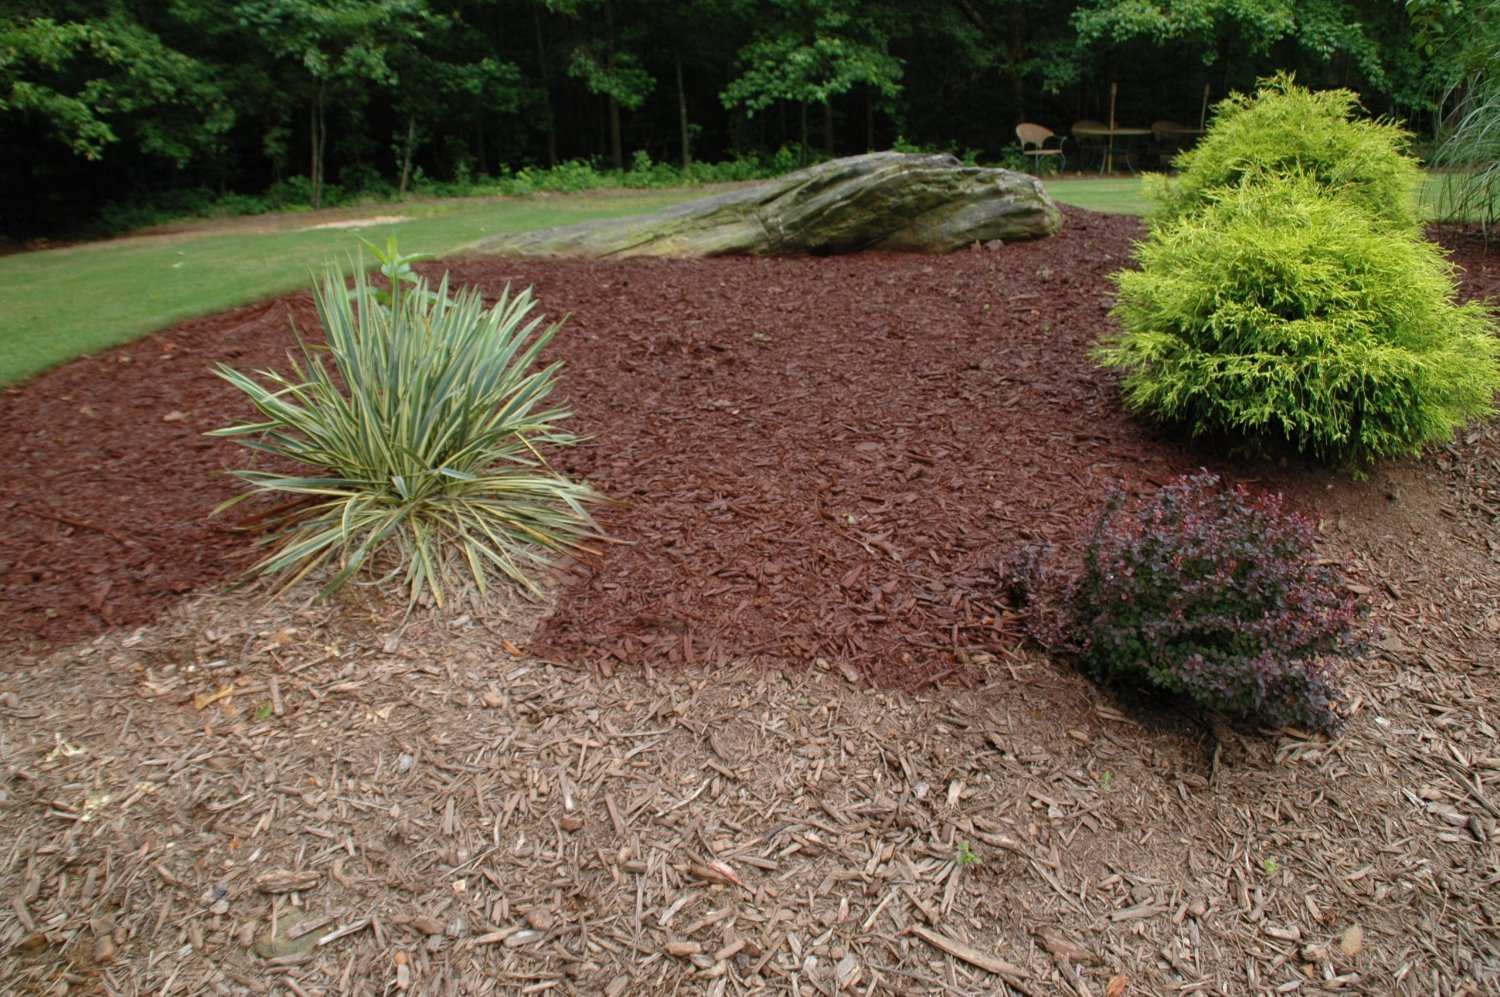 EnviroColor CB0032 851612002032 2,400 Sq. Ft. Cocoa Brown Mulch Color Concentrate, 2400 Square Feet by EnviroColor (Image #5)